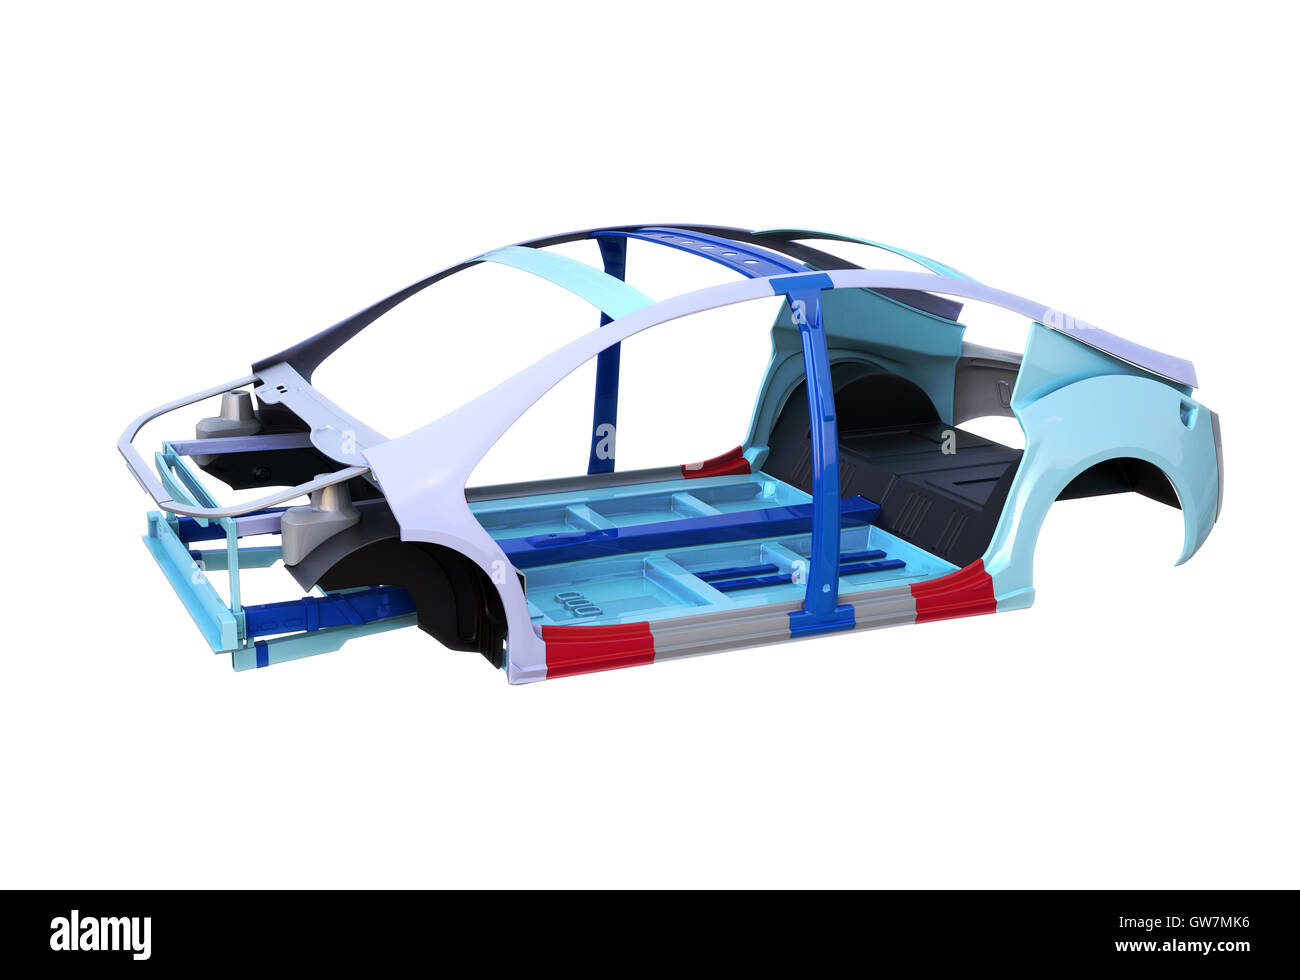 Electric vehicle body and frame  isolated on white background. 3D rendering image. - Stock Image